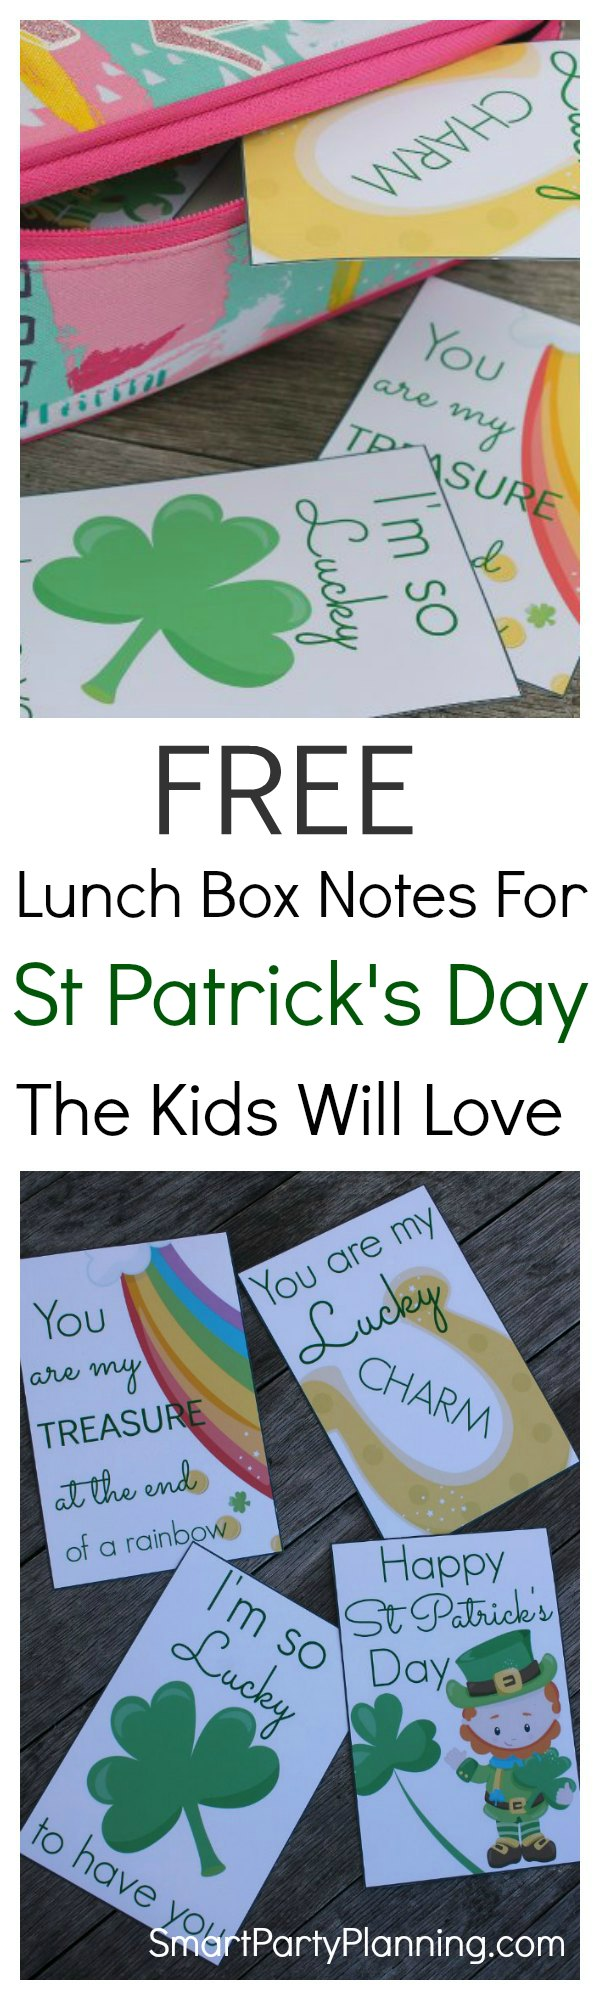 Free printable lunch notes for kids. These super fun notes are perfect to send with the kids on St Patrick's day. Kids love to receive a special note and this is the easiest way of doing it for the non-crafty mom's. Simply print, cut and add into your kid's lunch box. It will certainly brighten up their day.